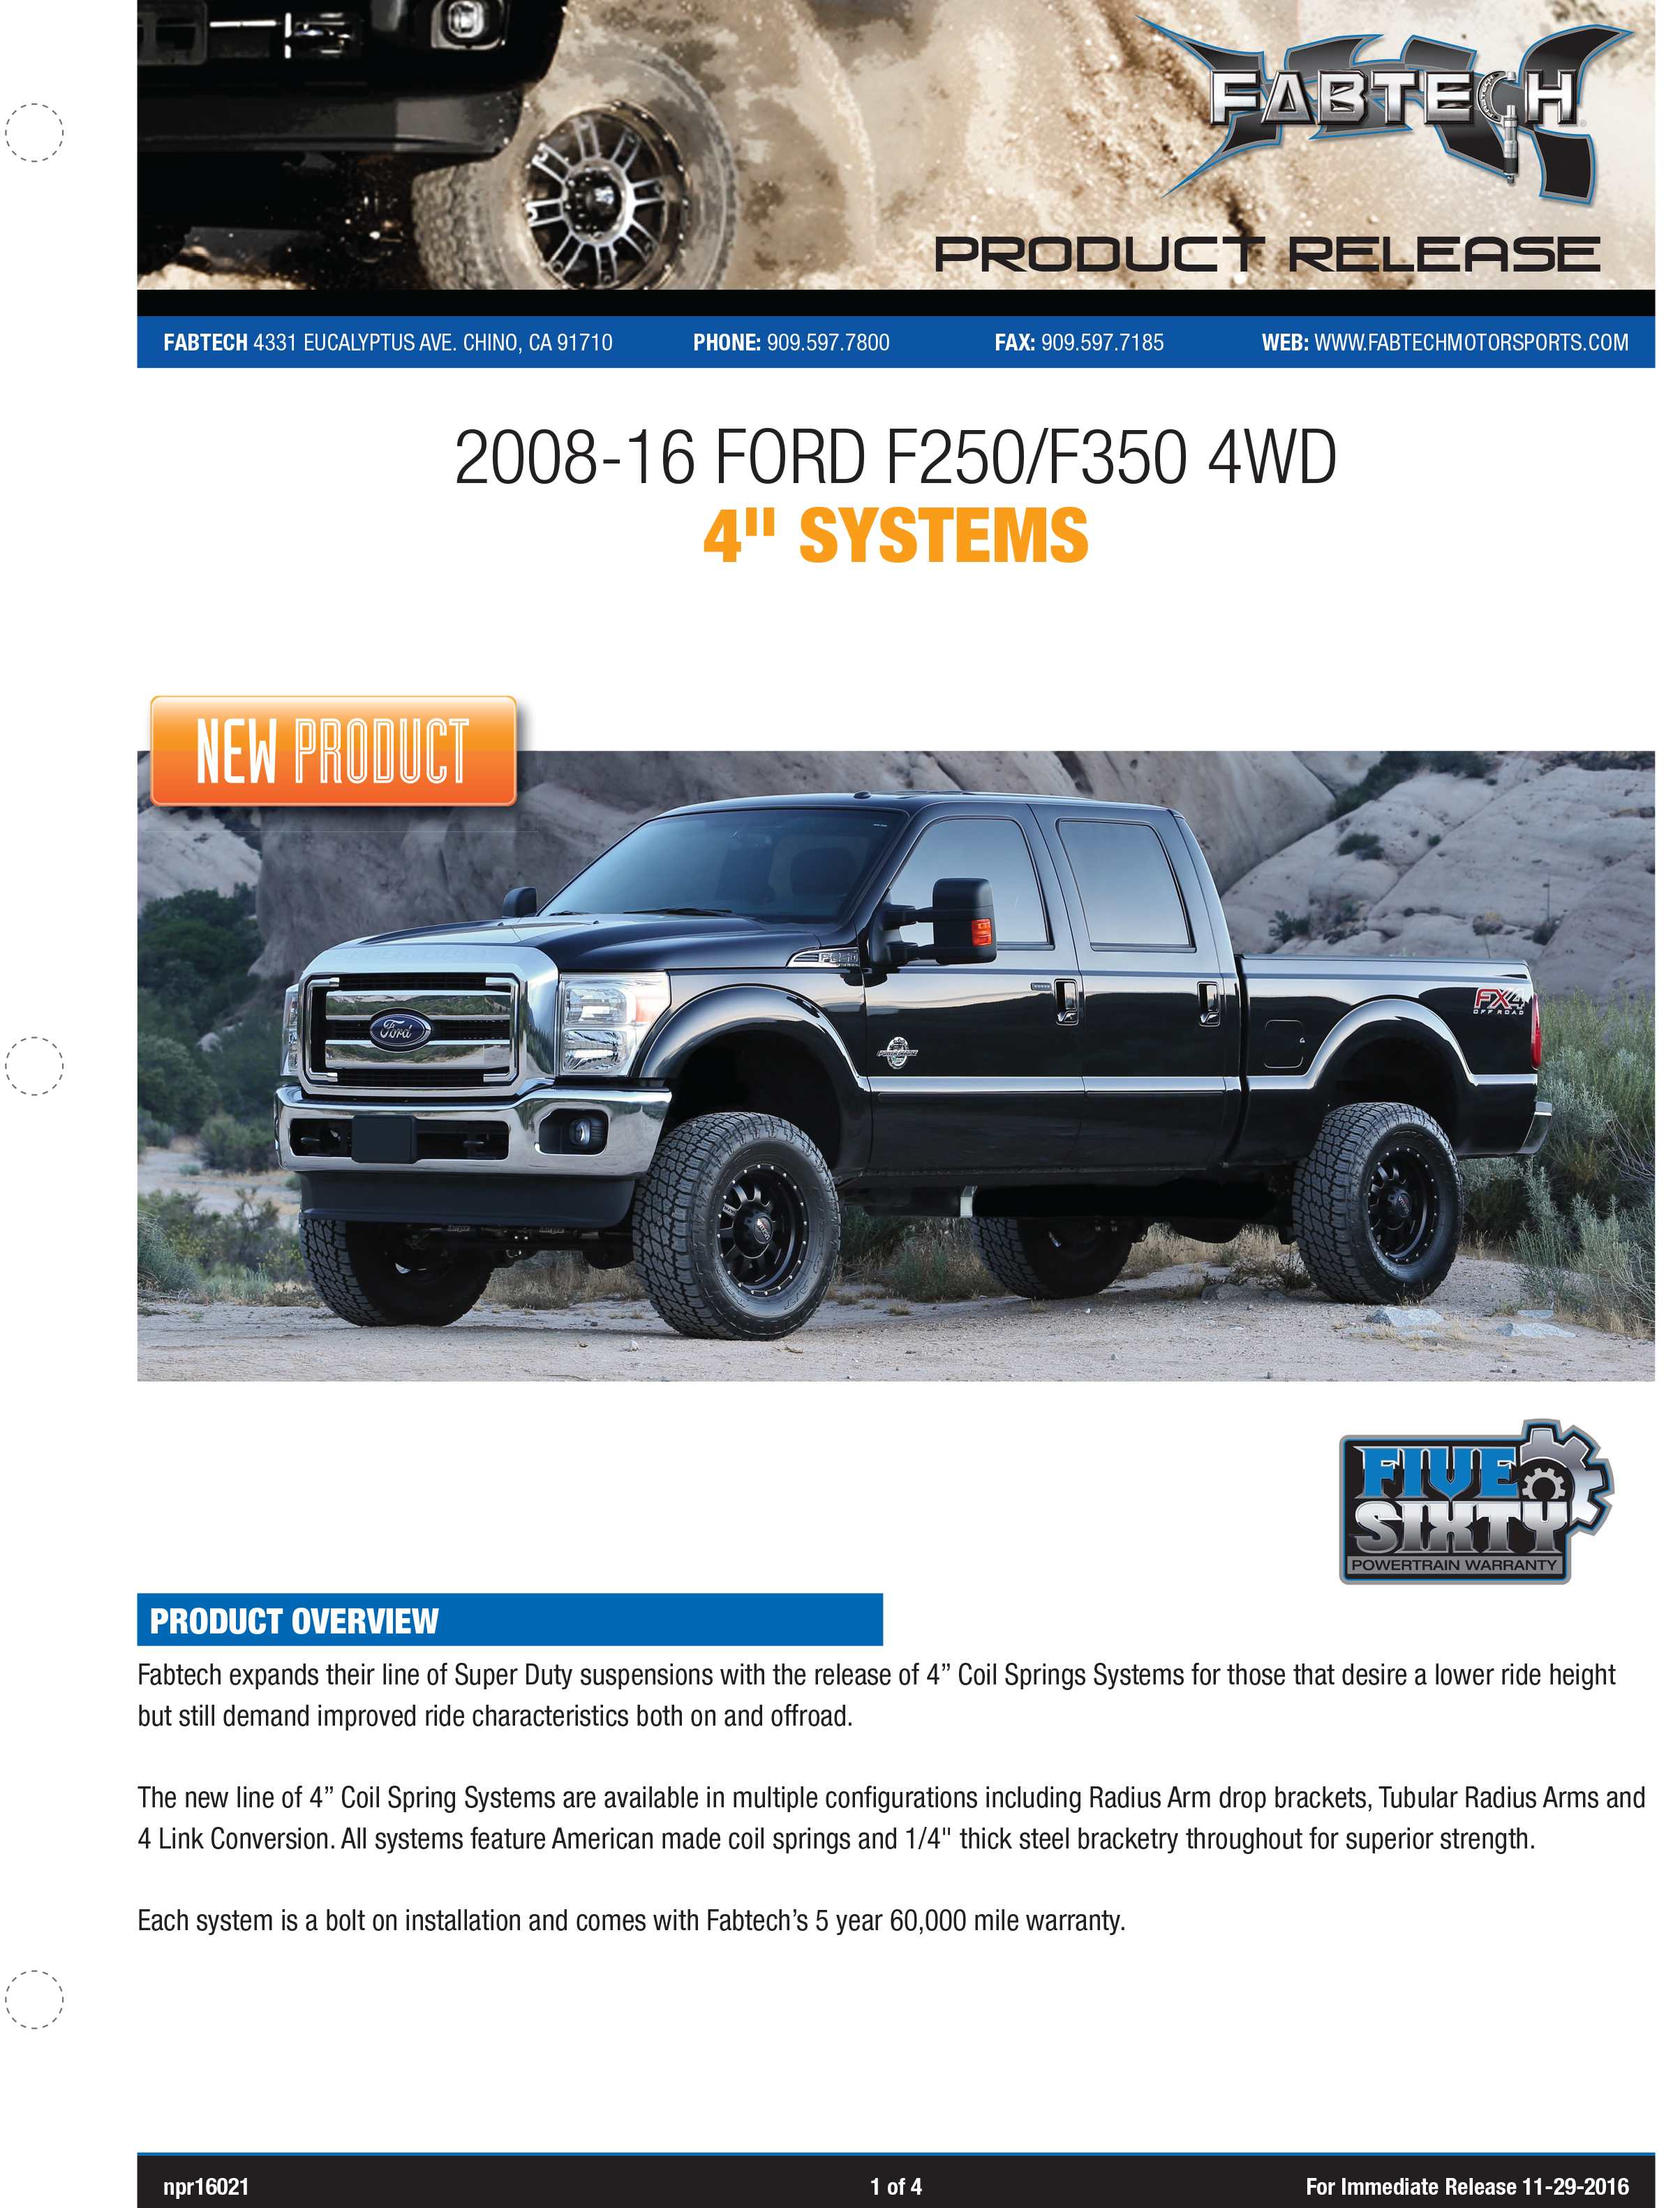 Lift Leveling Kits In Long Beach Ca Signal Hill Lakewood 1997 Ford Pickup F350 System Wiring Diagram Service Repair And Call Us Today To Schedule An Appointment At Our Auto Shop Were Convenient All Of Eastside As Well The Airport